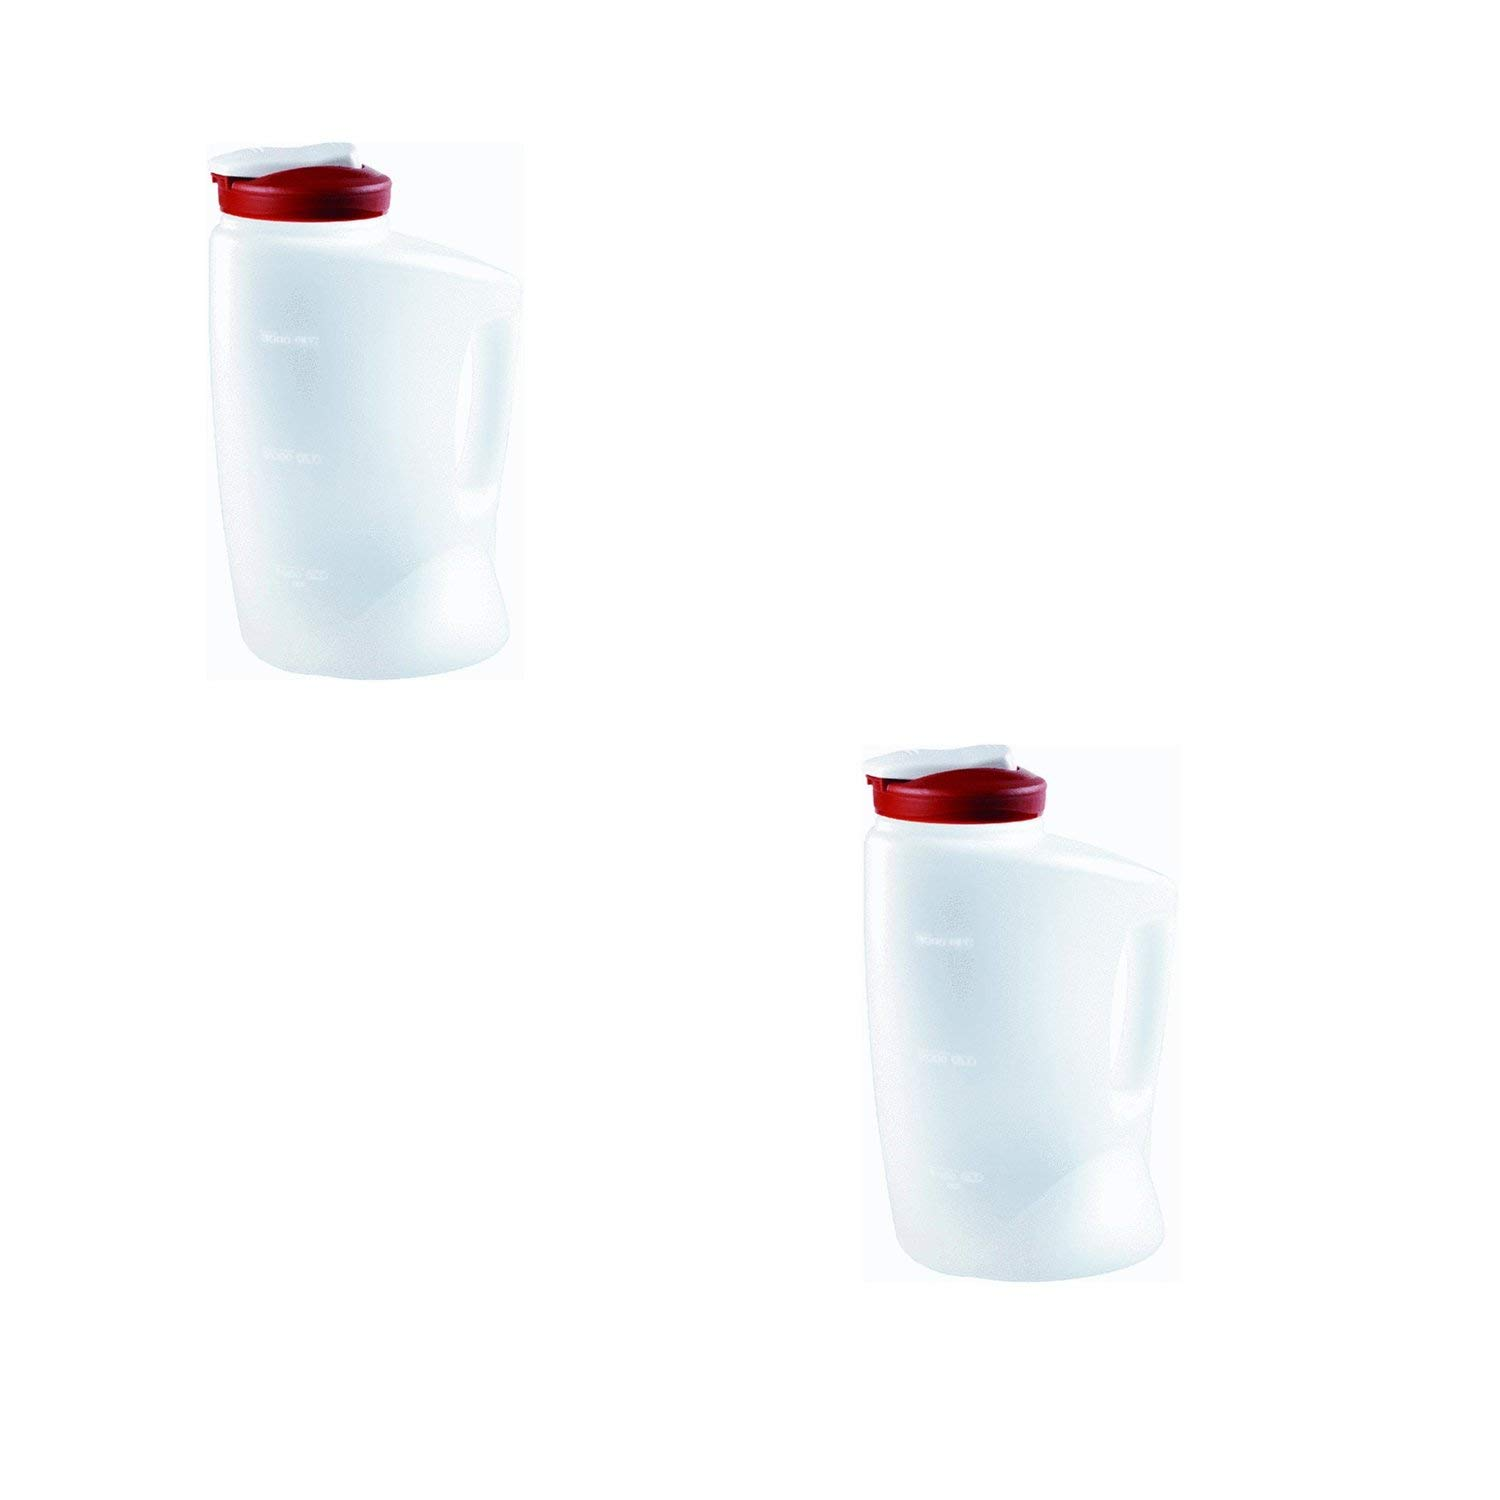 Rubbermaid COMINHKPR140279 (Red) 7E60 1-Gallon Pitcher (2-Pack), 1 Gallon